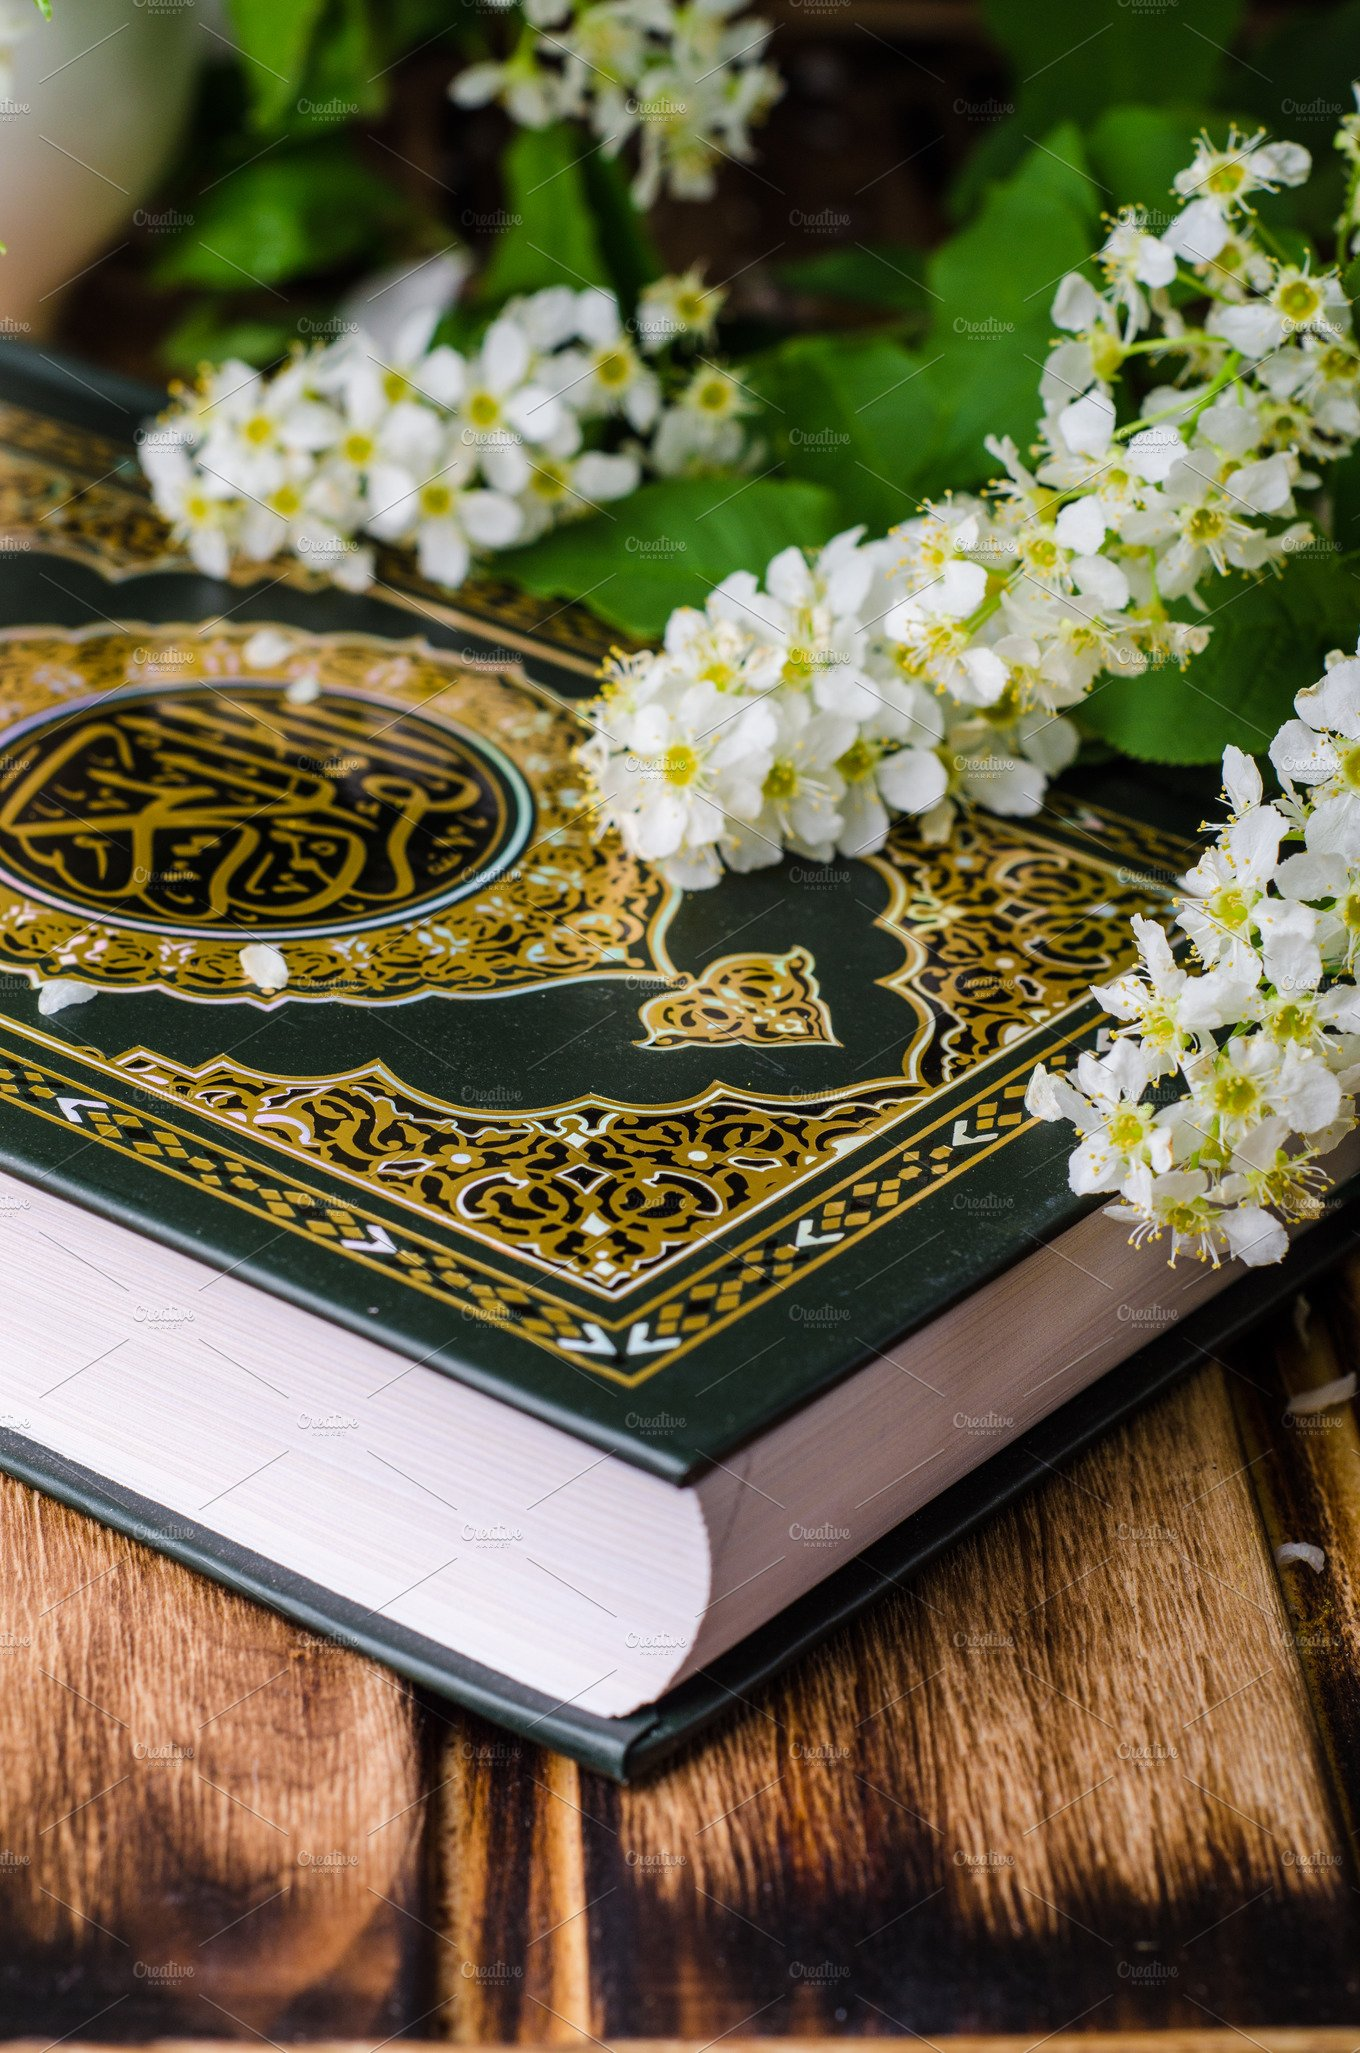 Quran Holly Book Of Islam With Spring Flowers And Blue Scarf On Wooden Background Selective